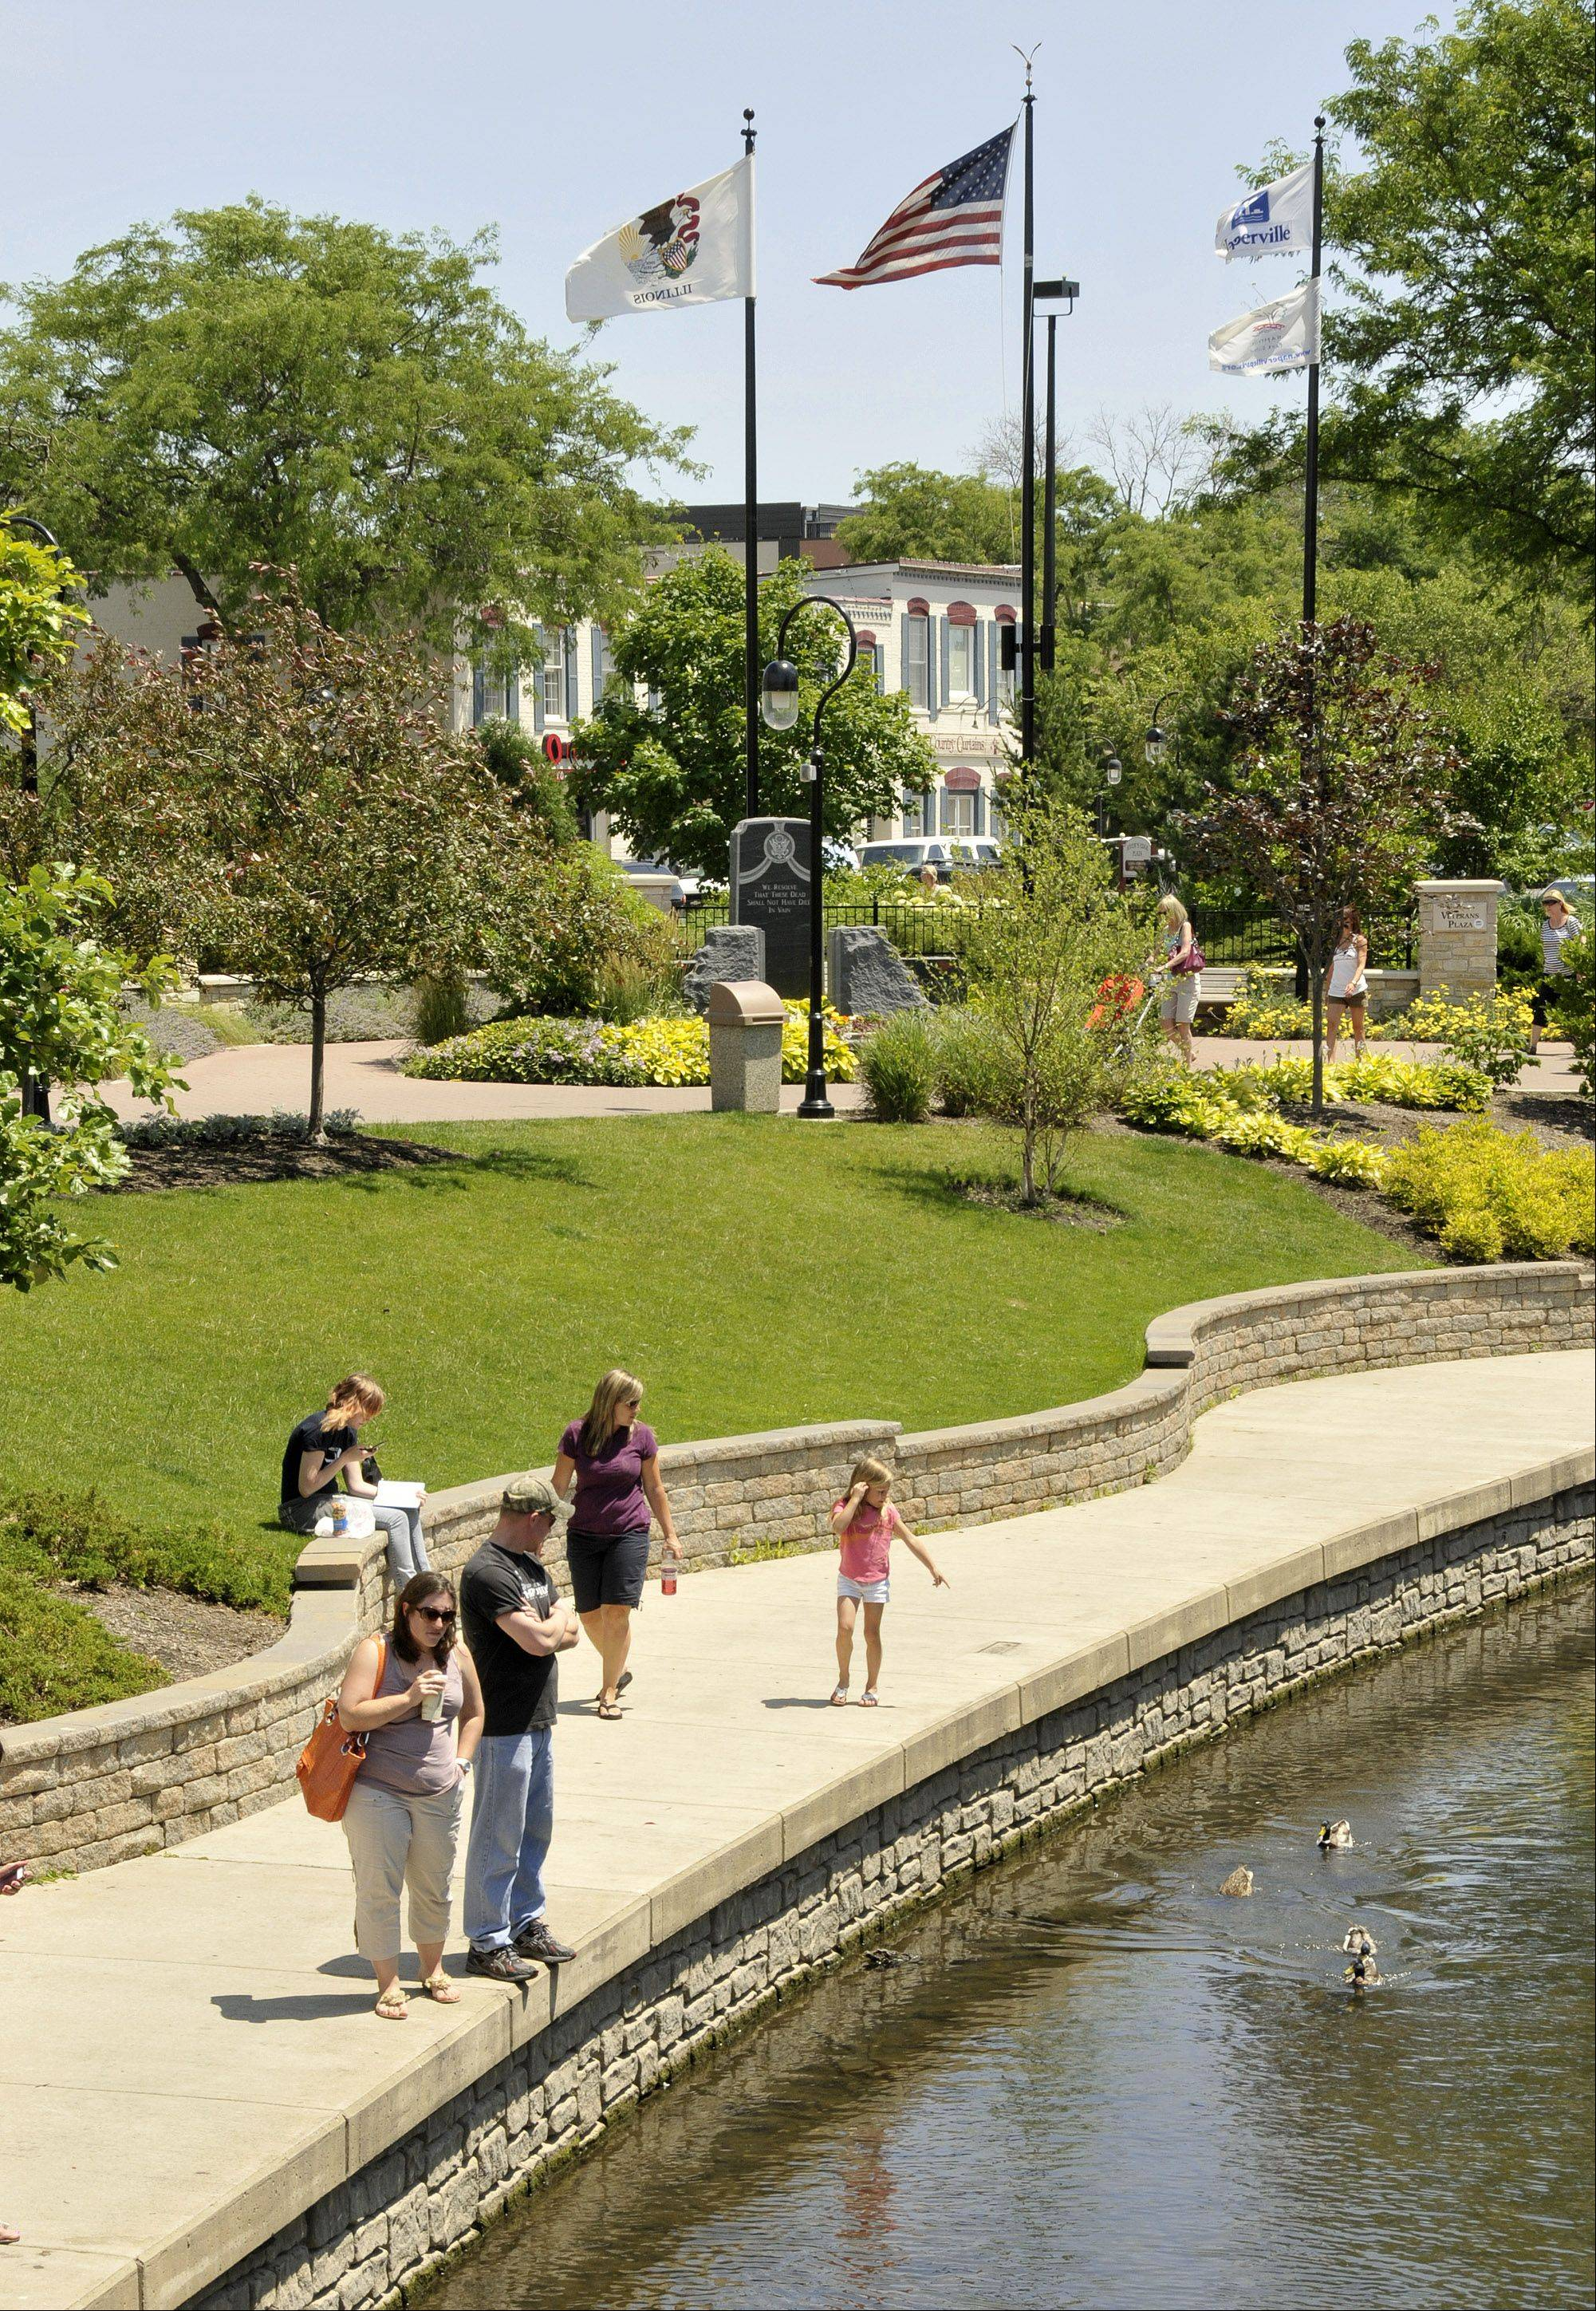 Naperville's Riverwalk Commission is going to ask the city and park district for permission to extend the iconic path by another block on its south end.